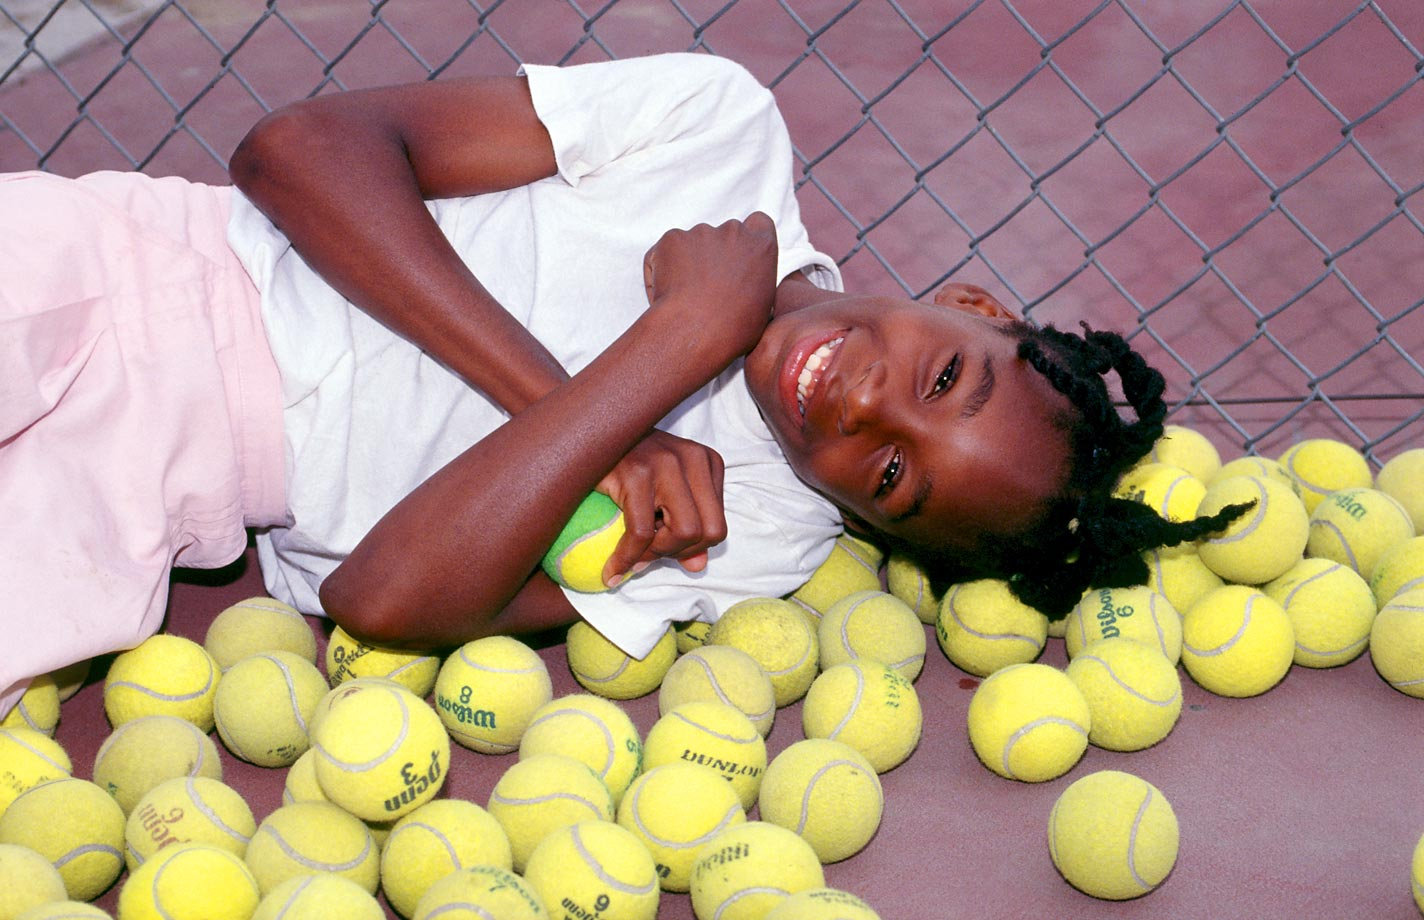 A 10-year-old Williams lies in a pile of tennis balls in Compton, Calif. Soon after this photo was taken, the Williams family moved from Compton to West Palm Beach so Venus and Serena could attend Rick Macci's tennis academy.